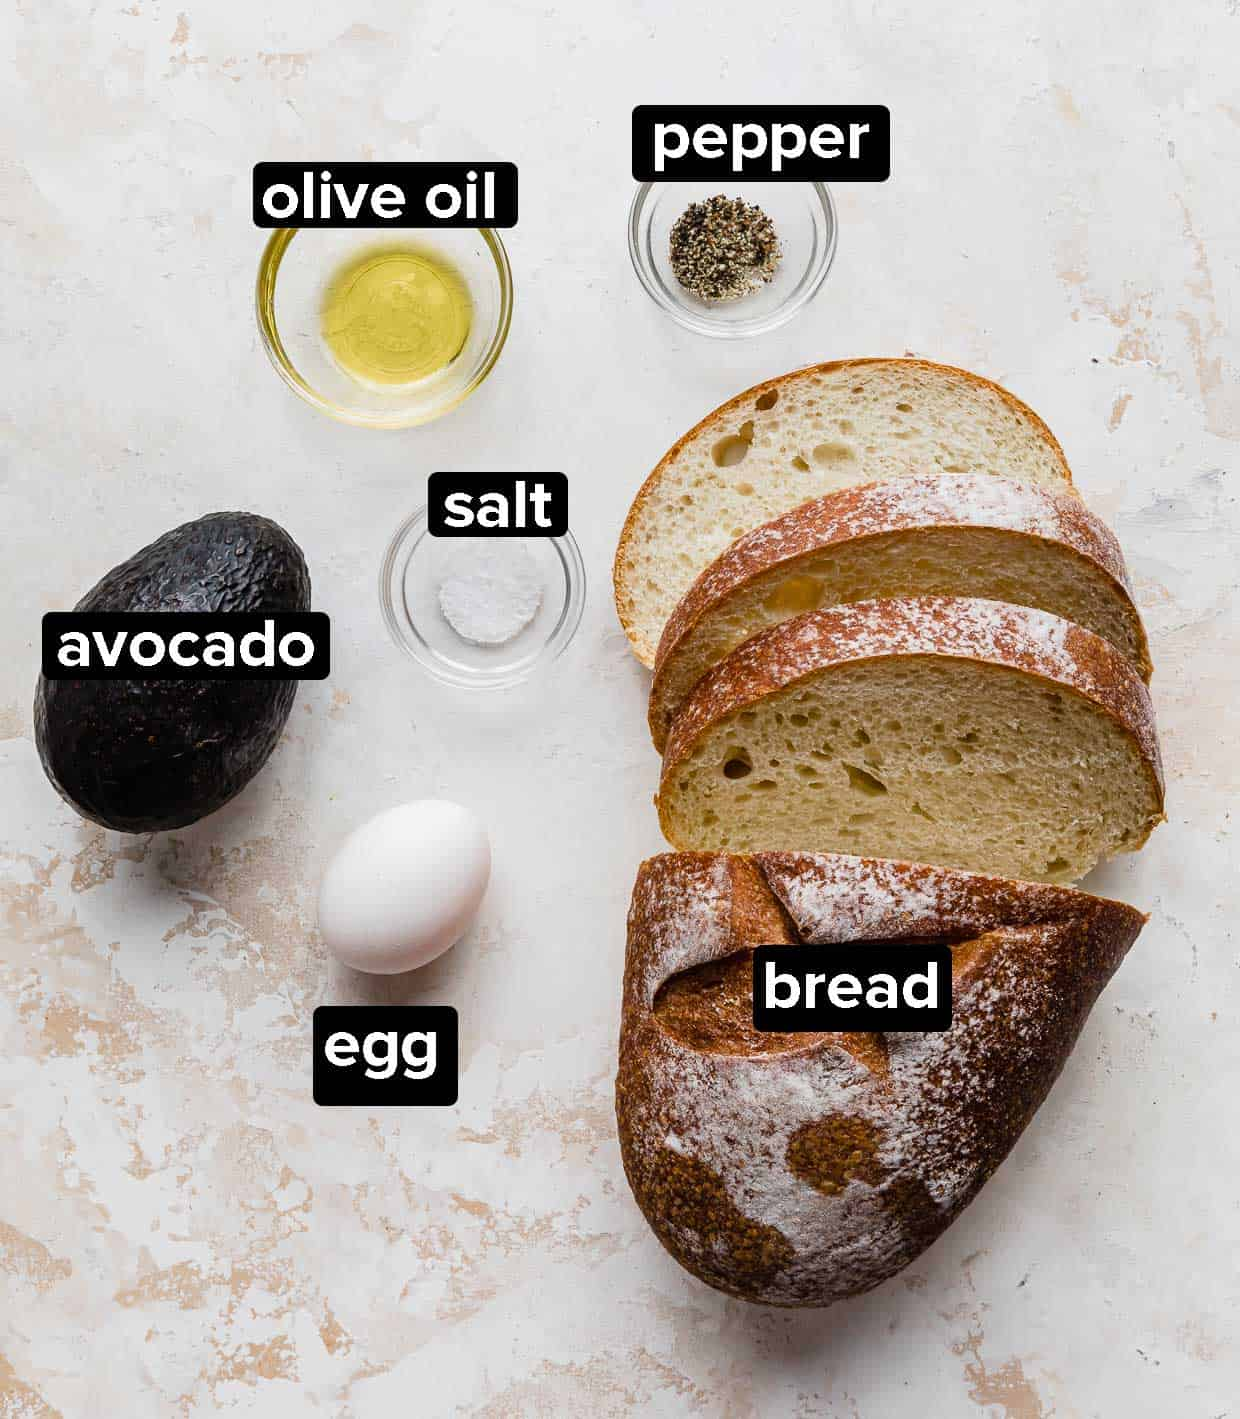 Ingredients used to make Avocado and Egg Toast.